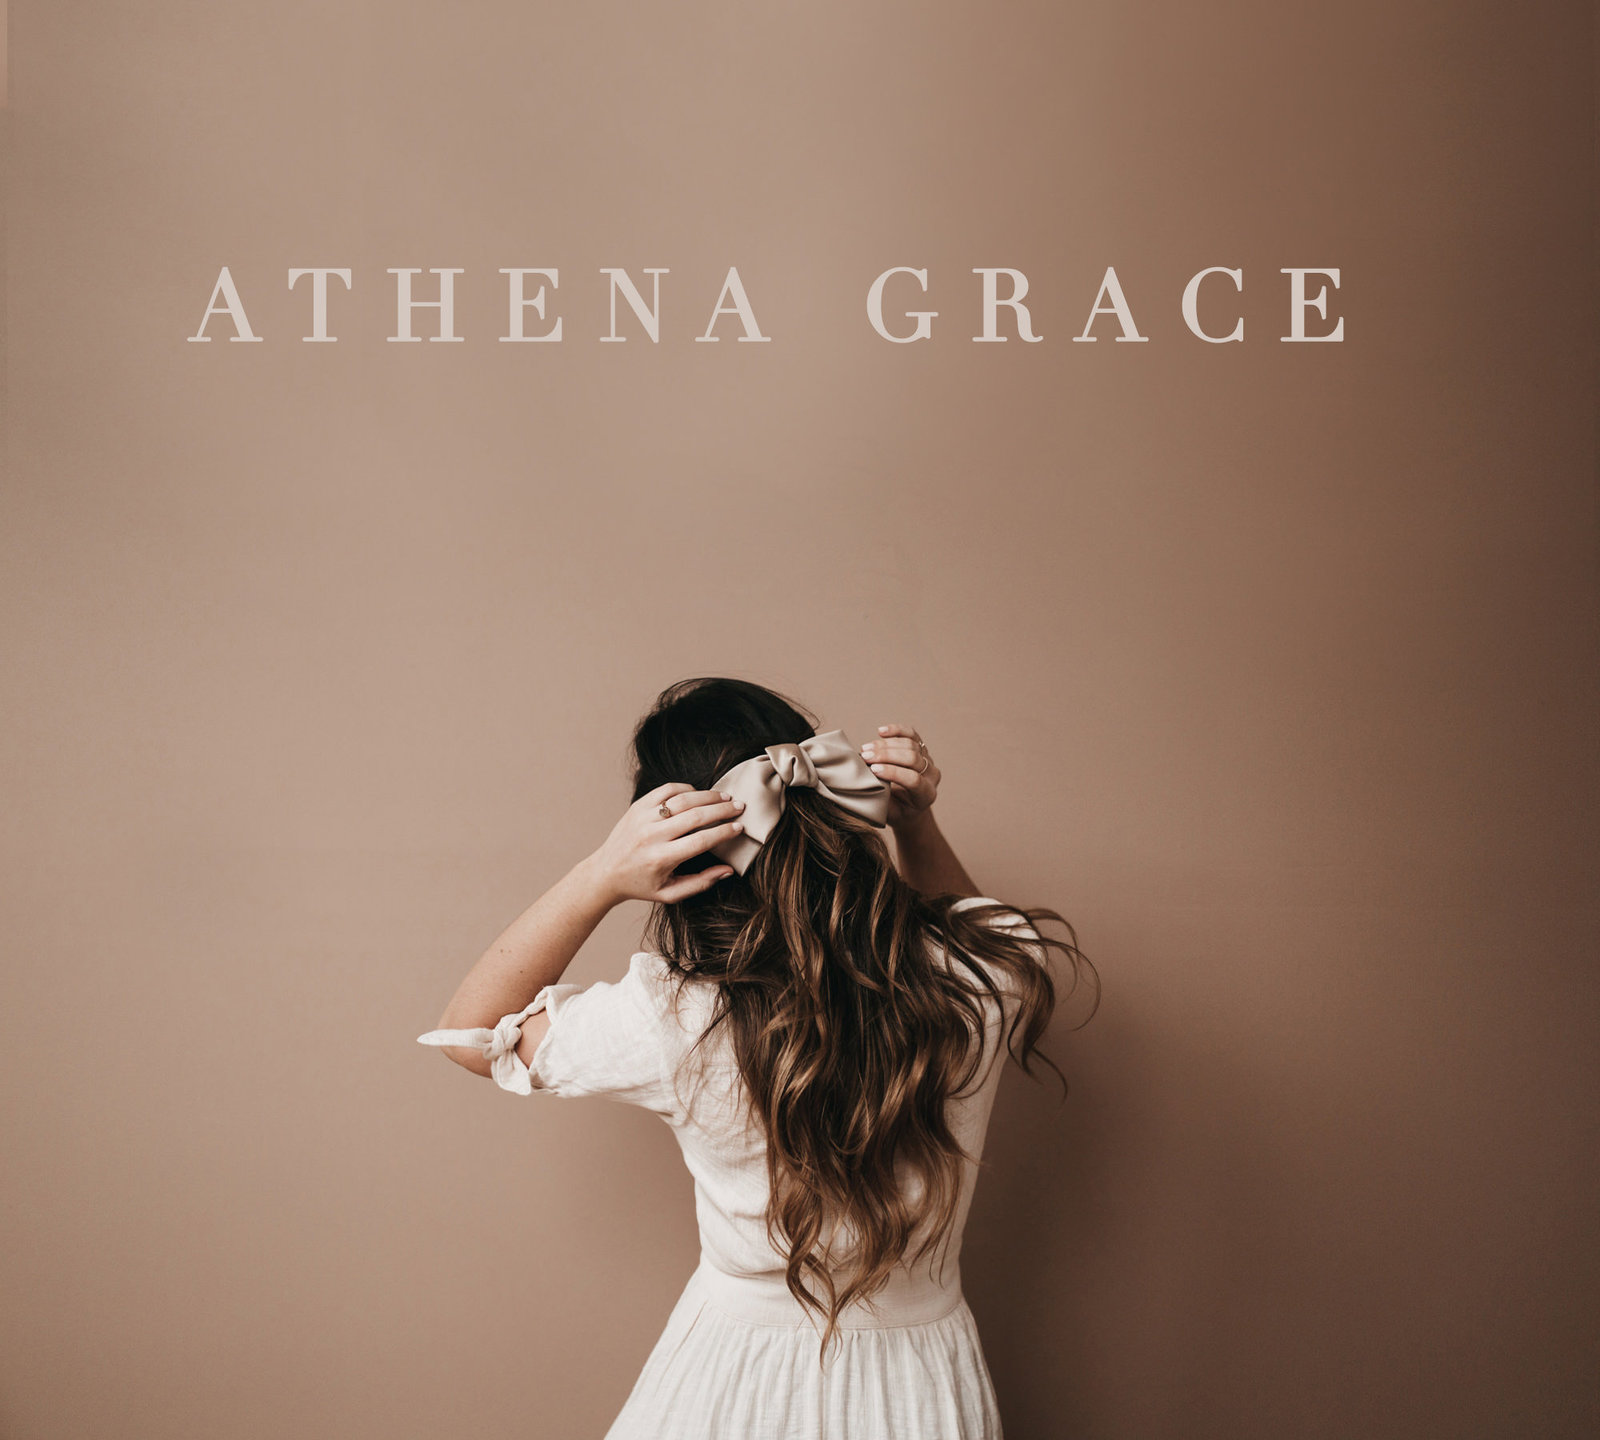 athena-grace-landing-page-coming-soon1